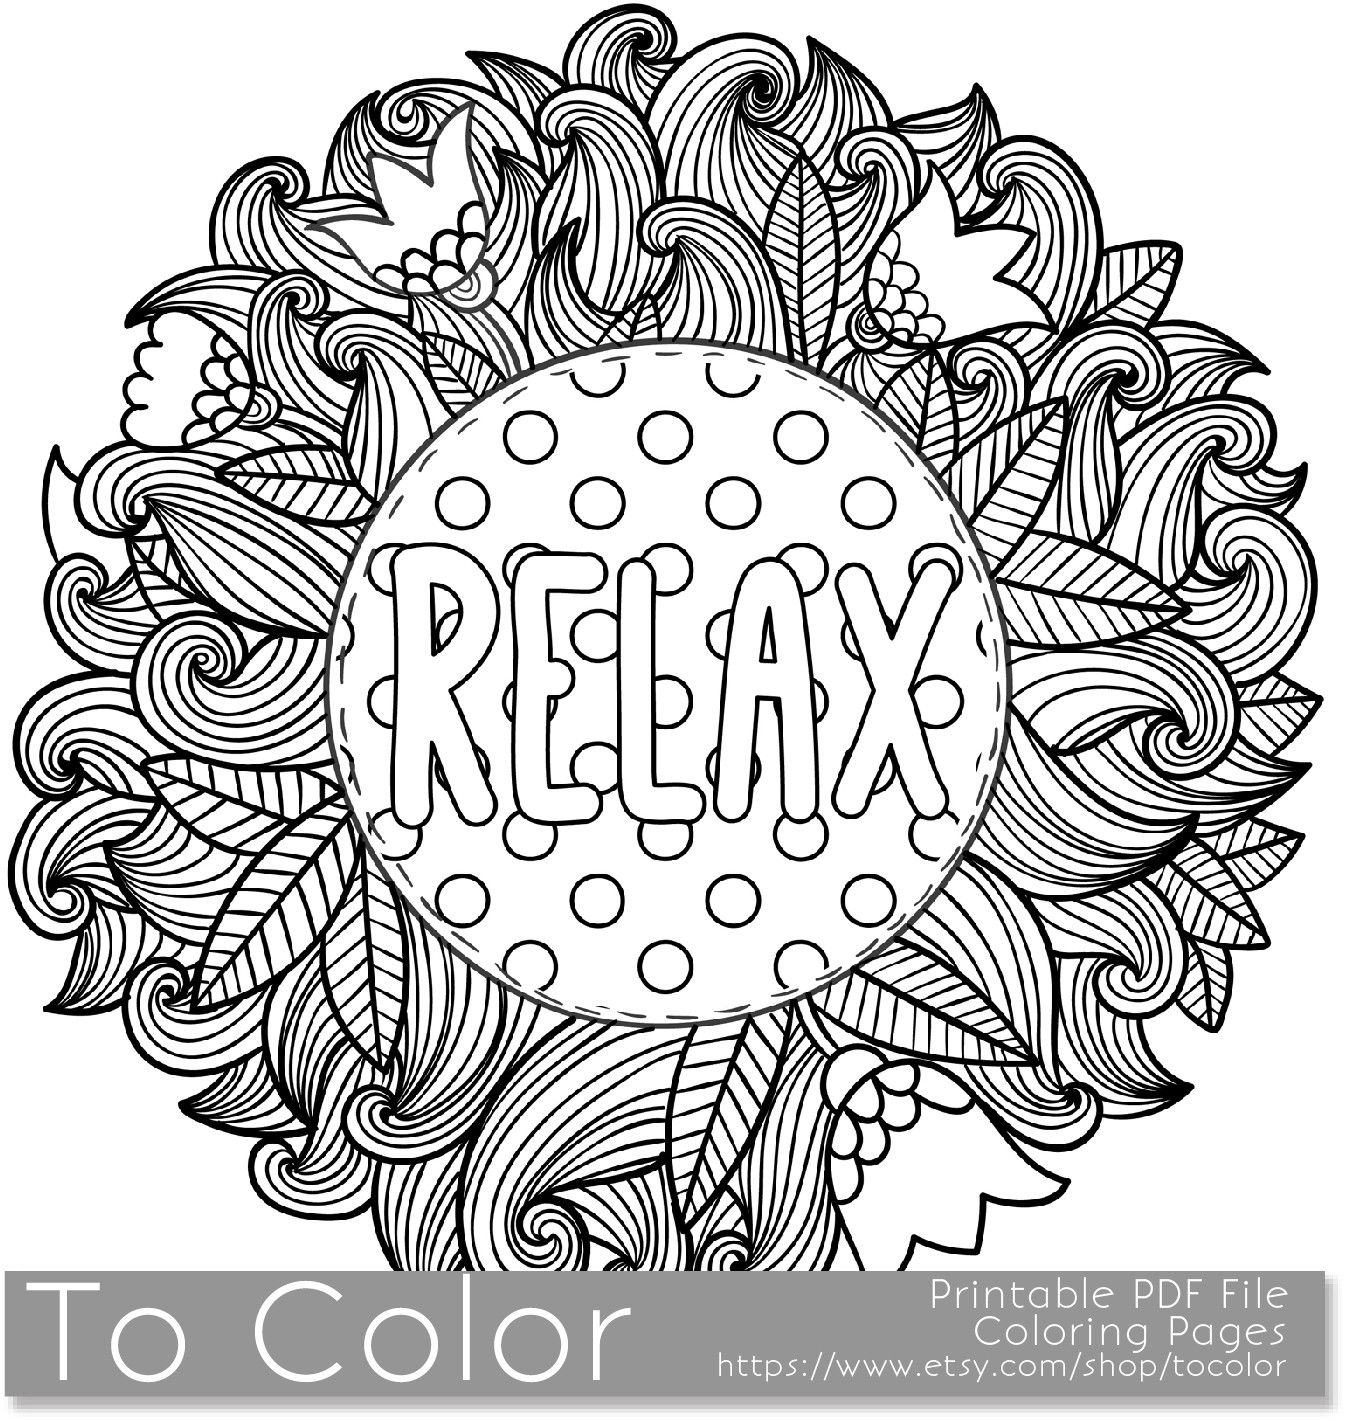 Coloring Pages For Grown Ups Pdf : Relax coloring page for grown ups this is a printable